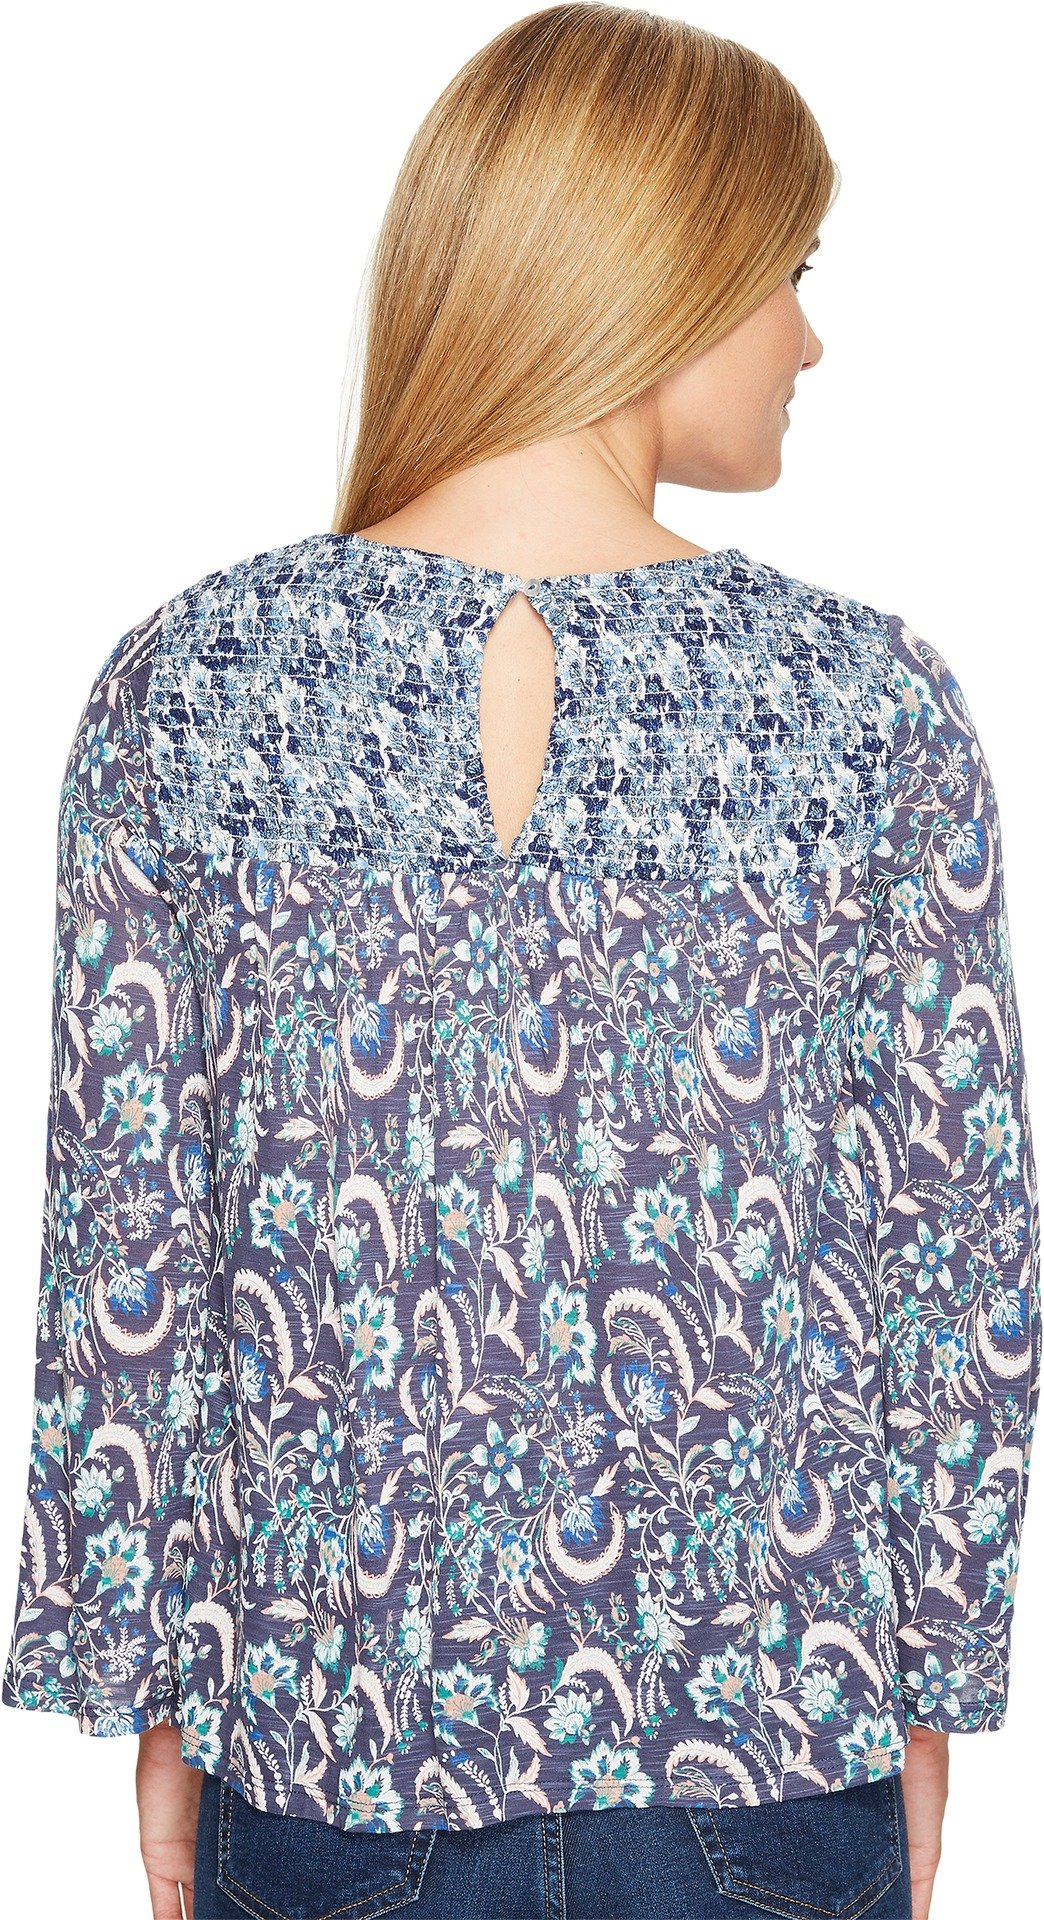 Lucky Brand Women's Mixed Print Smocked Top, Blue/Multi, Small